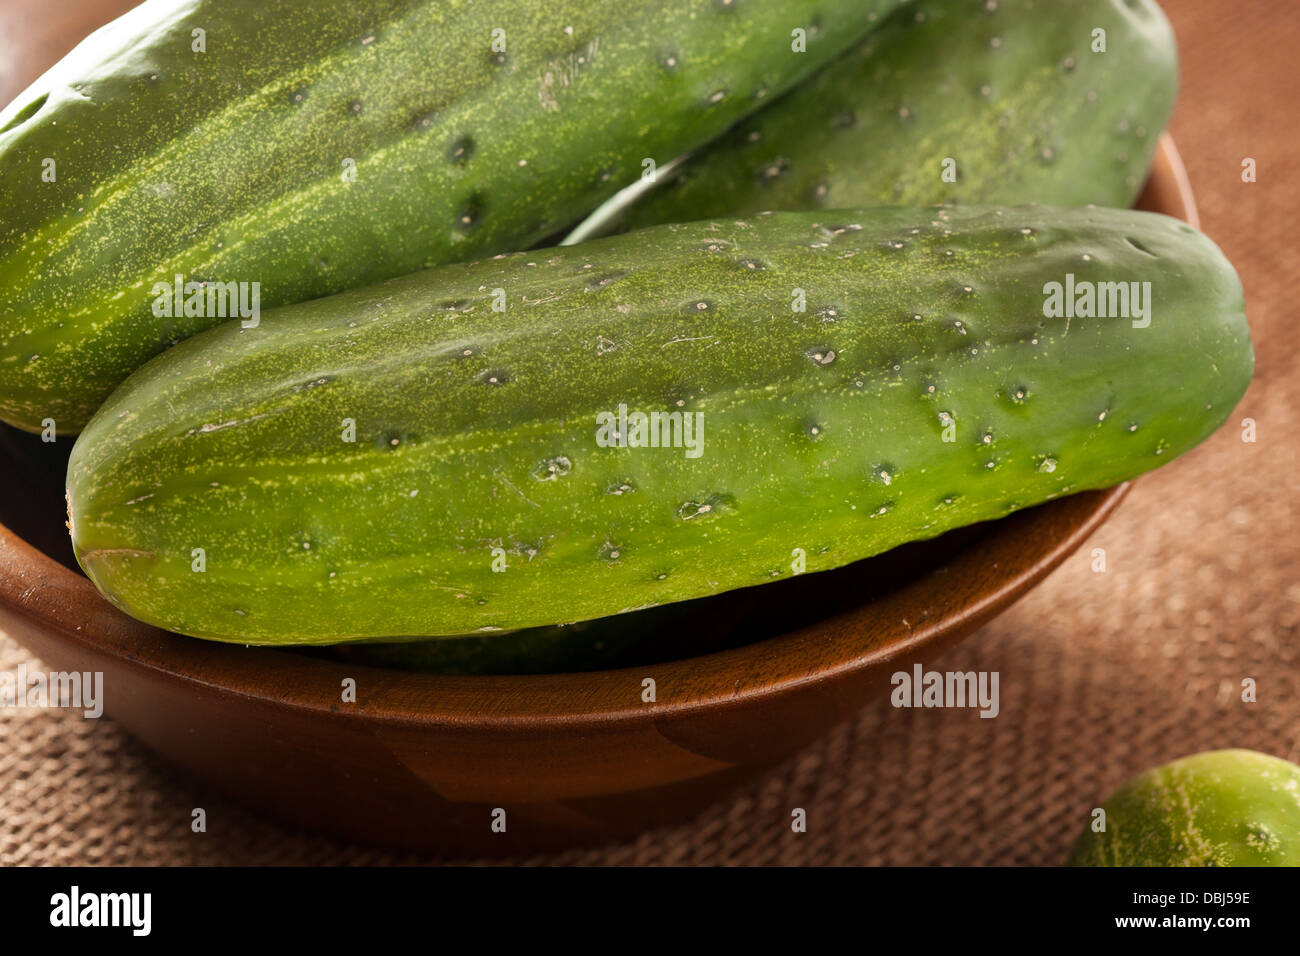 Organic Green Pickle Cucumbers used for Pickling - Stock Image